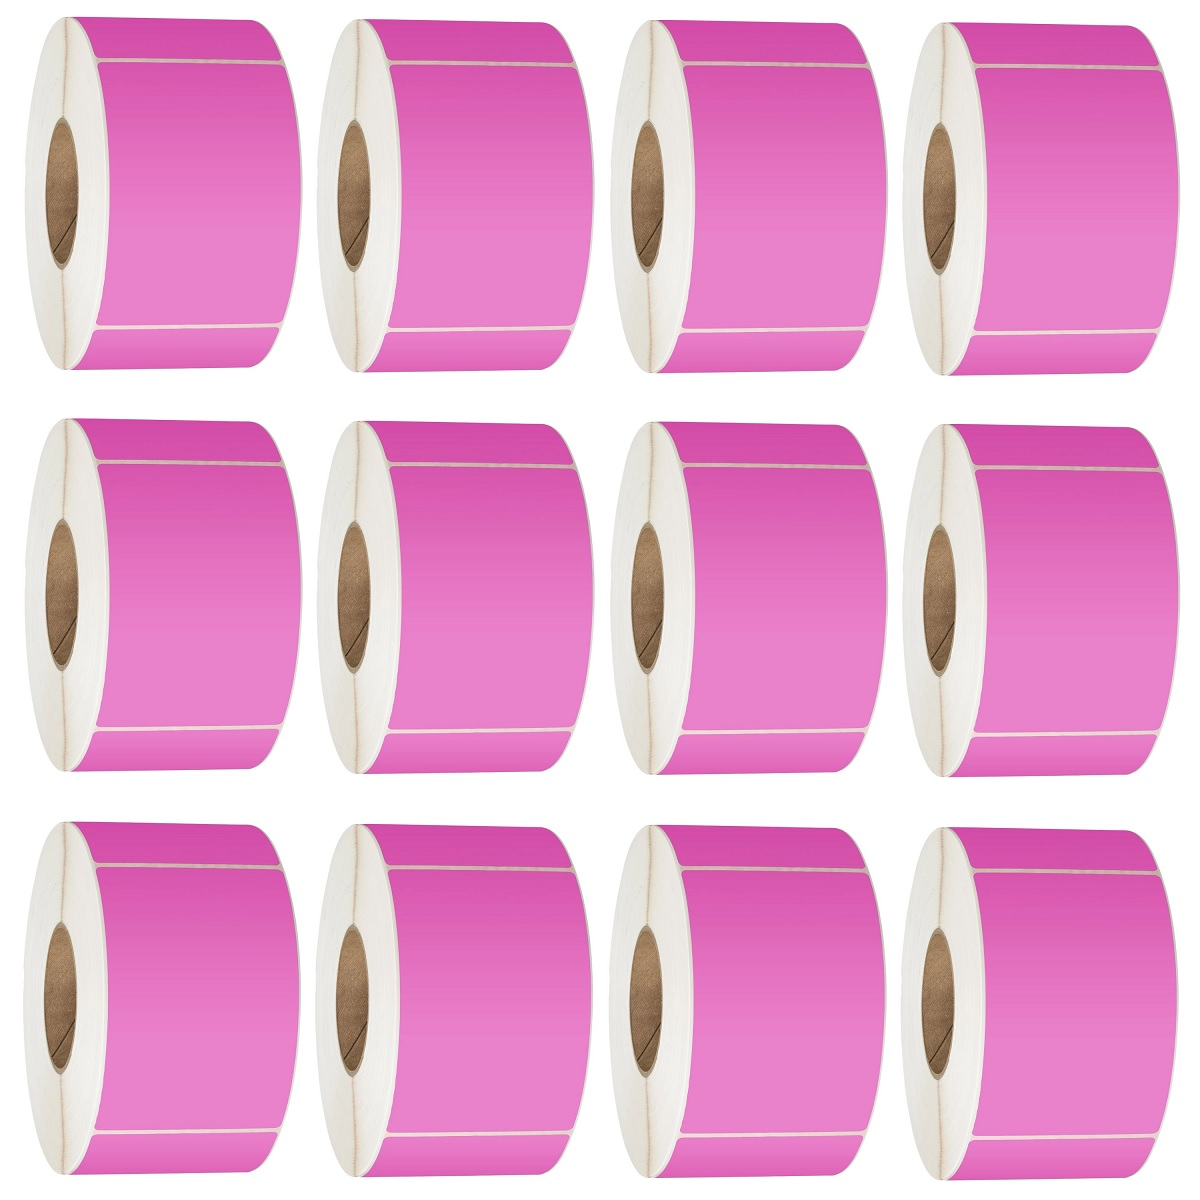 View 76X48 Thermal Transfer Labels 3000/Roll 76mm Core Pink - 12 Rolls